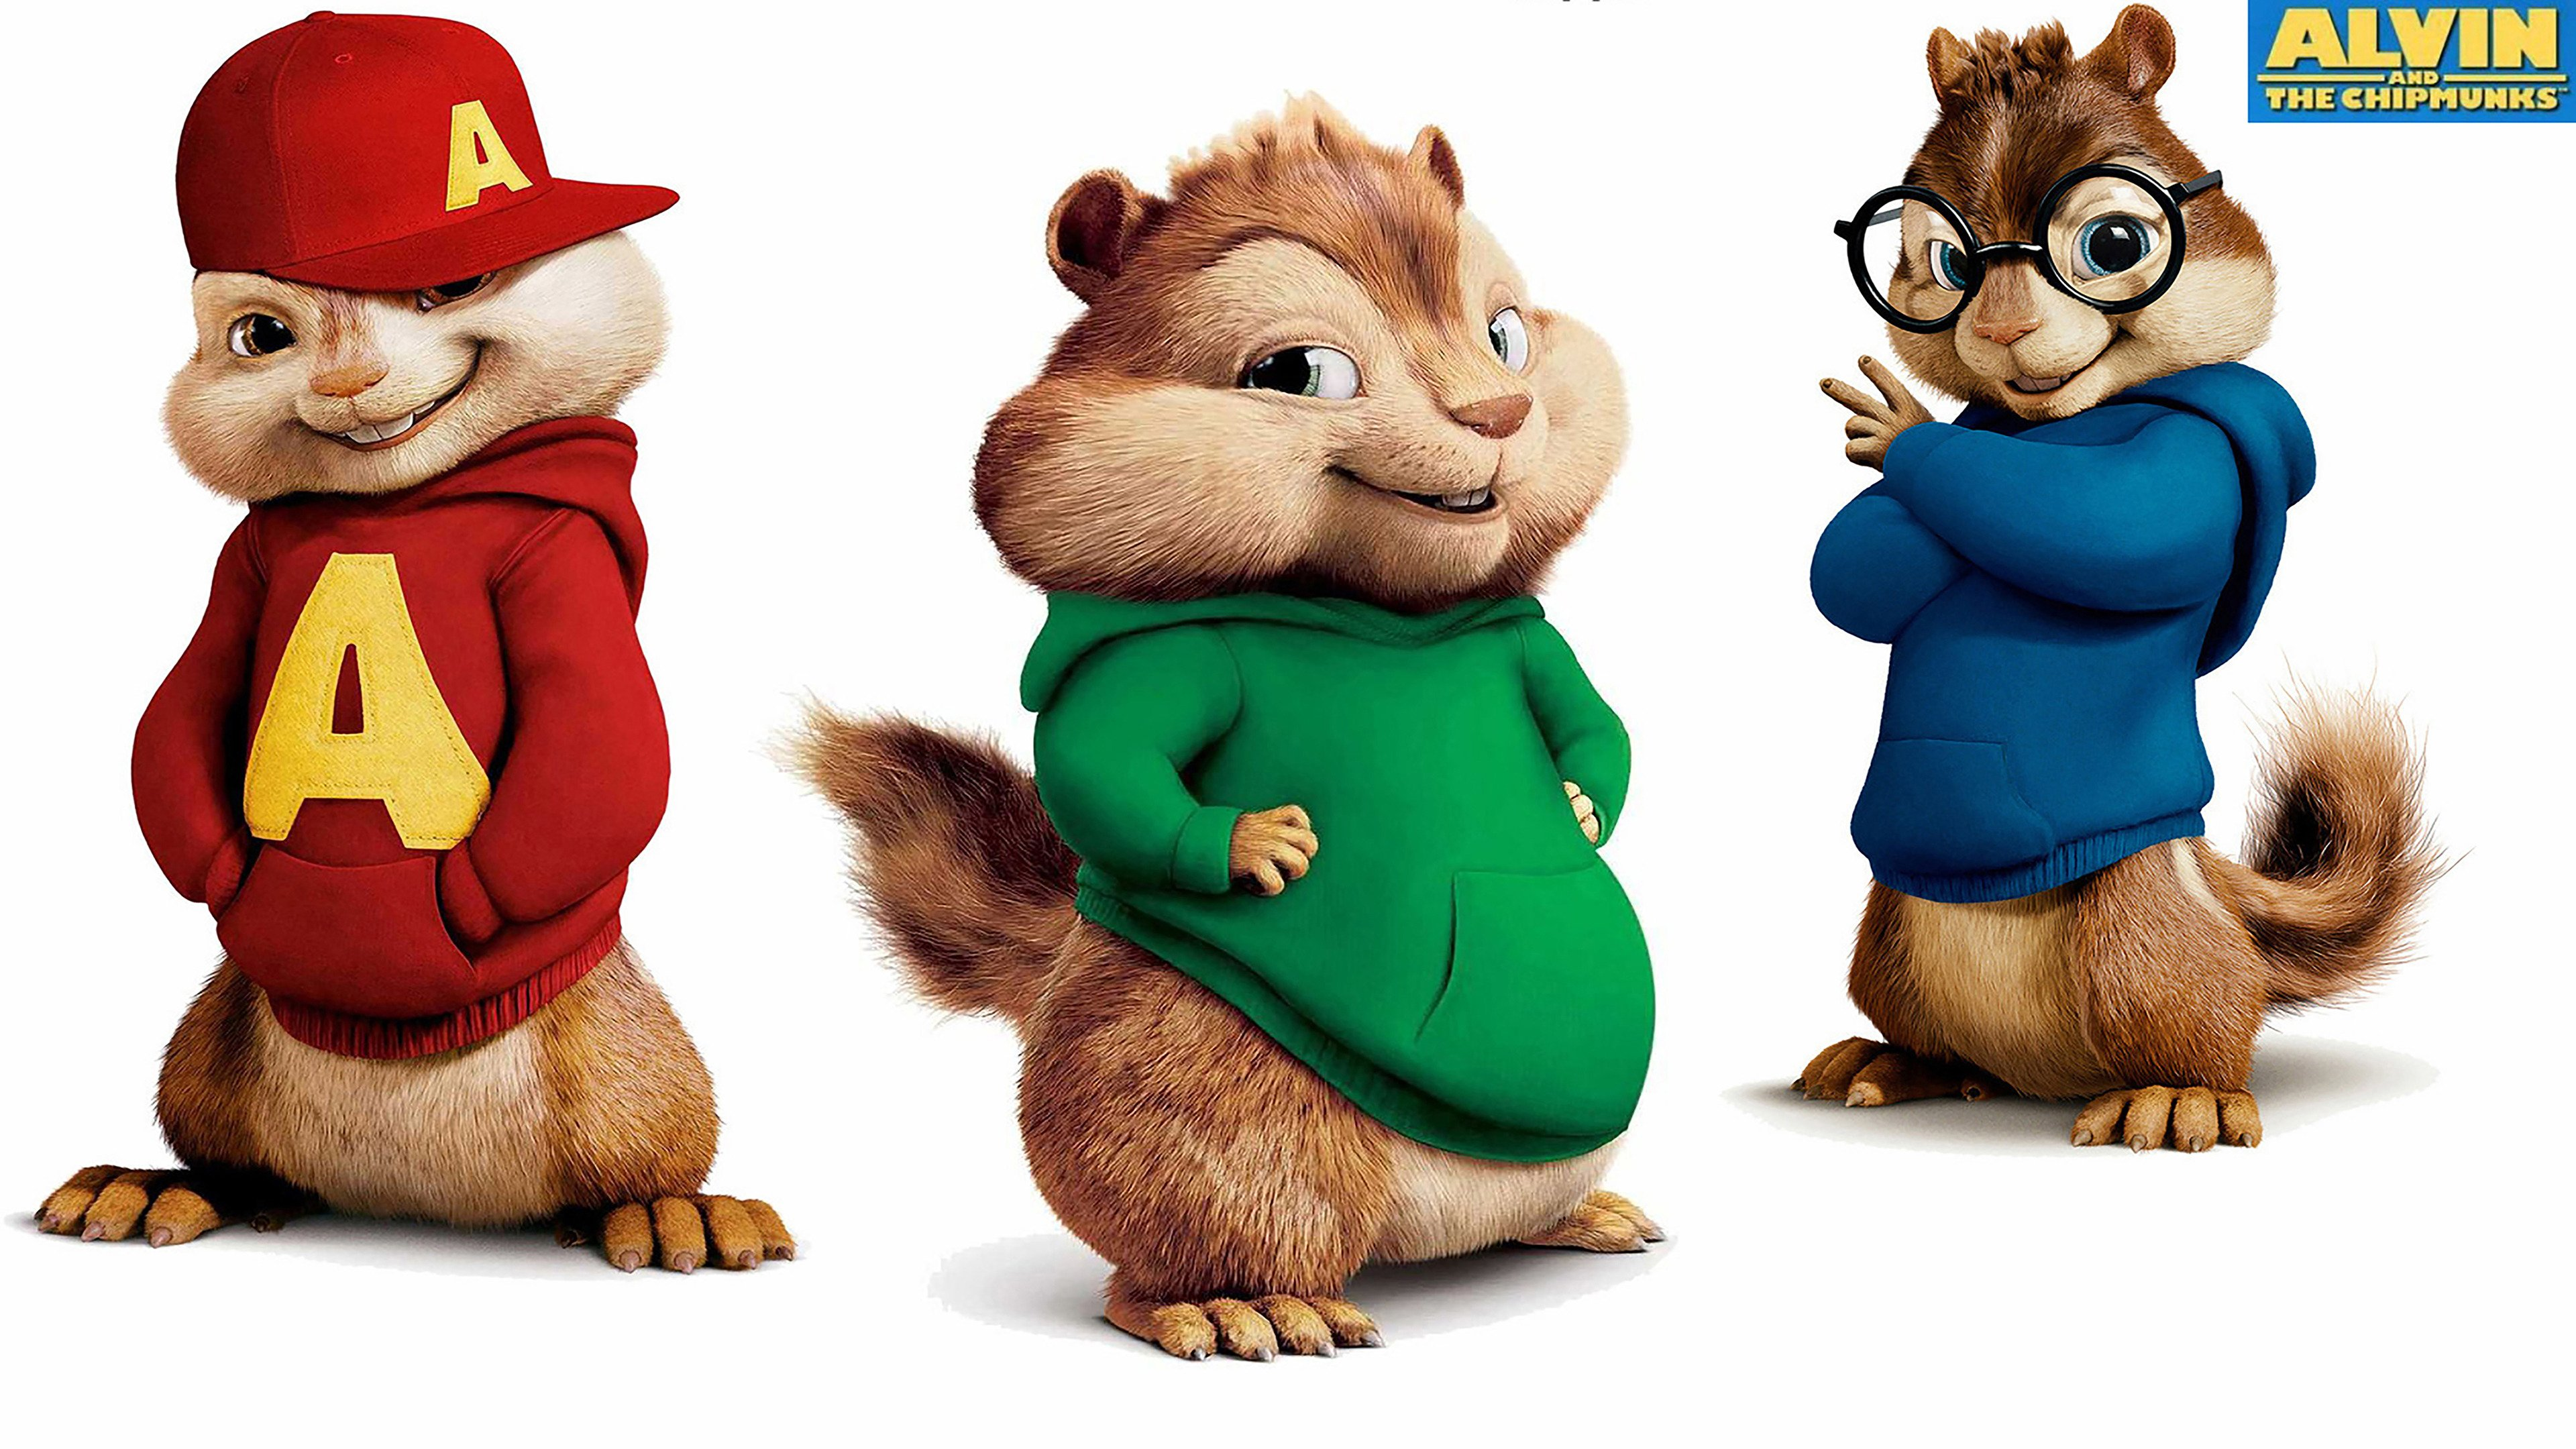 HQ Alvin And The Chipmunks Wallpapers | File 961.07Kb